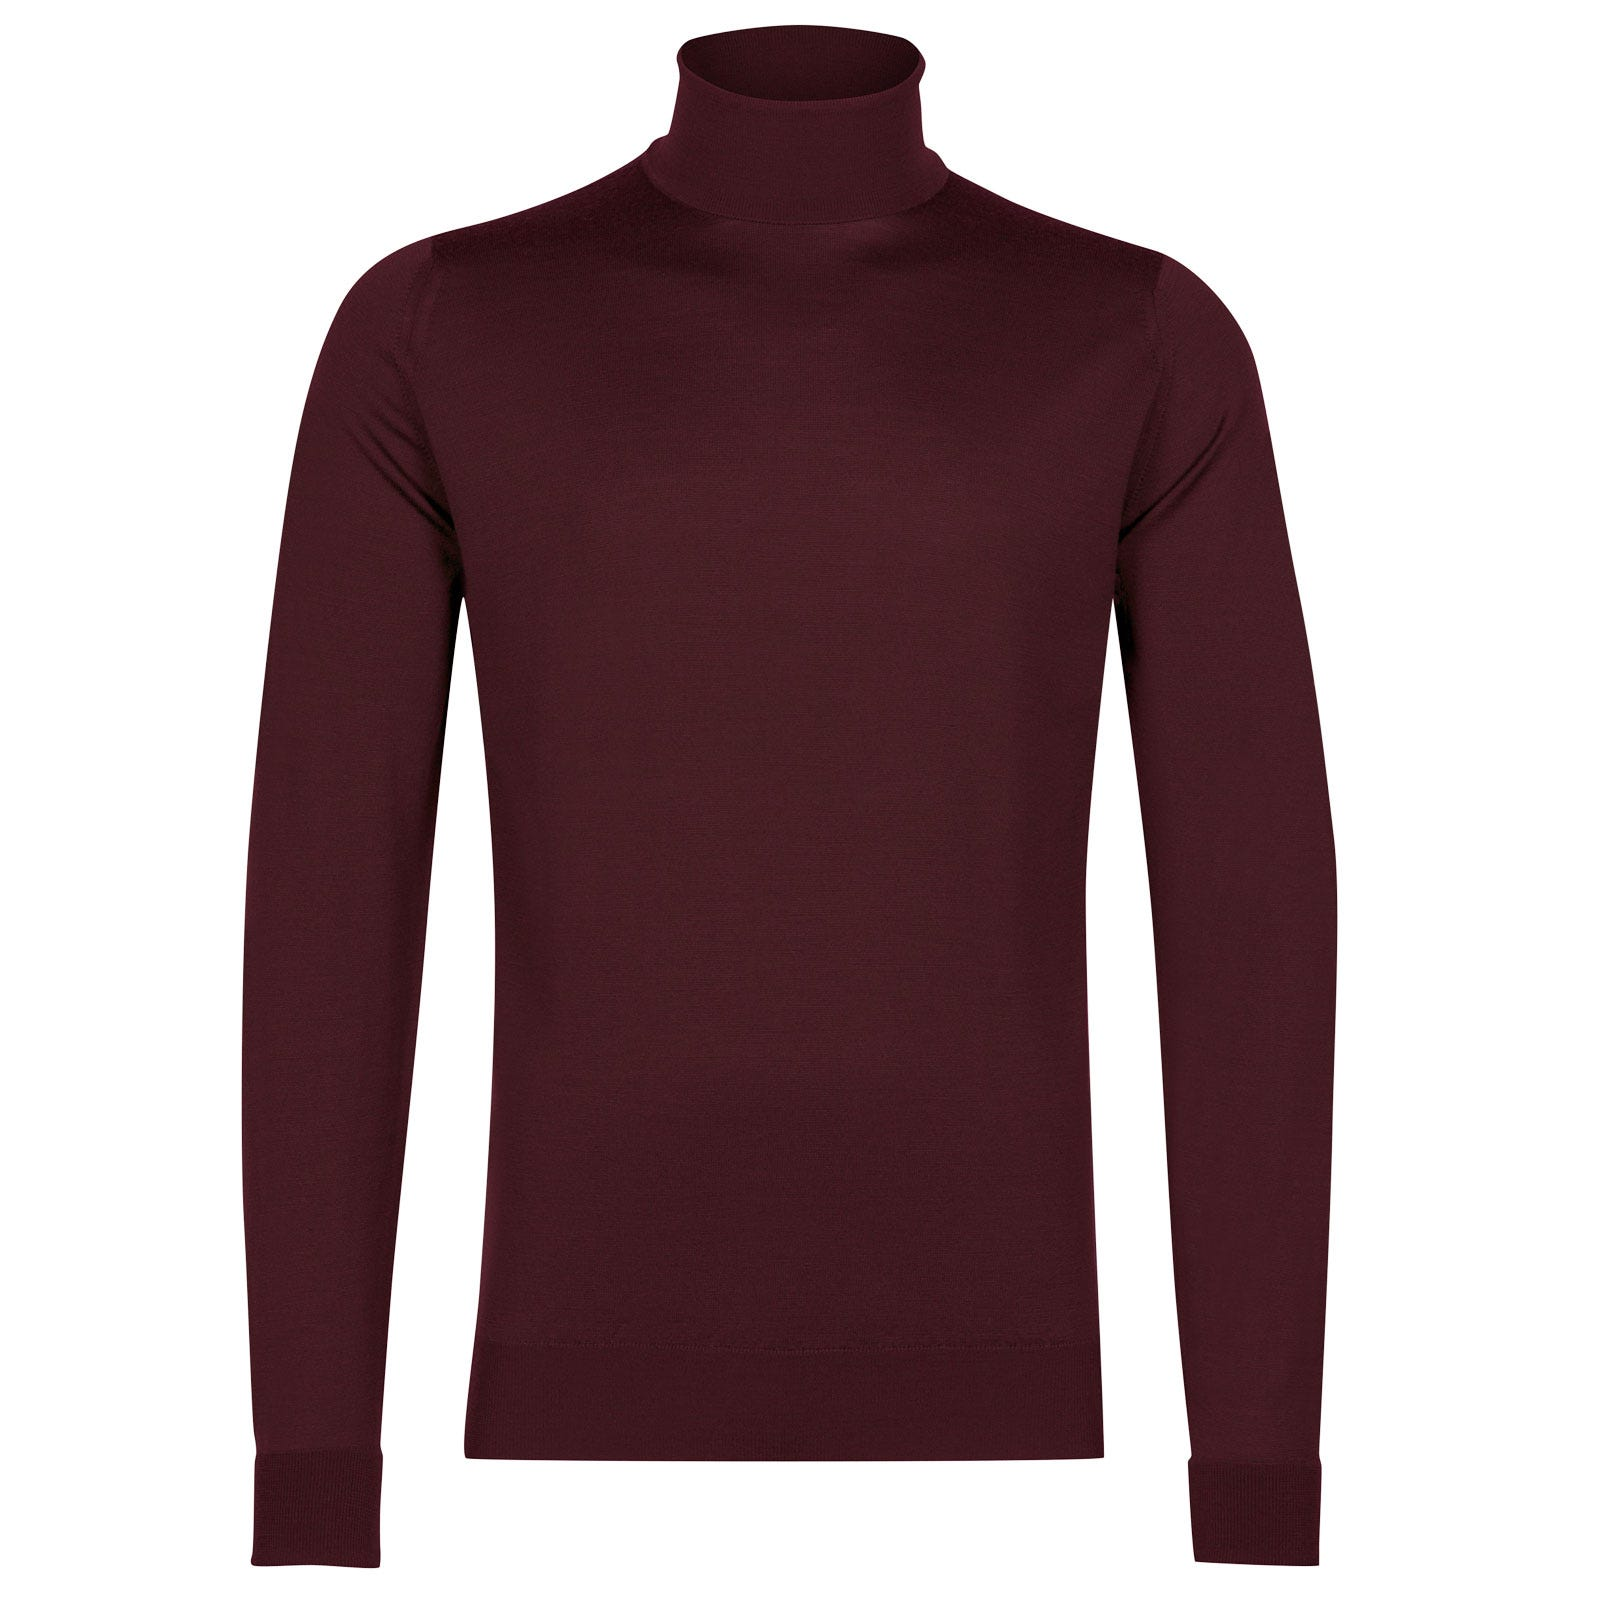 John Smedley richards Merino Wool Pullover in Maroon Blaze-M